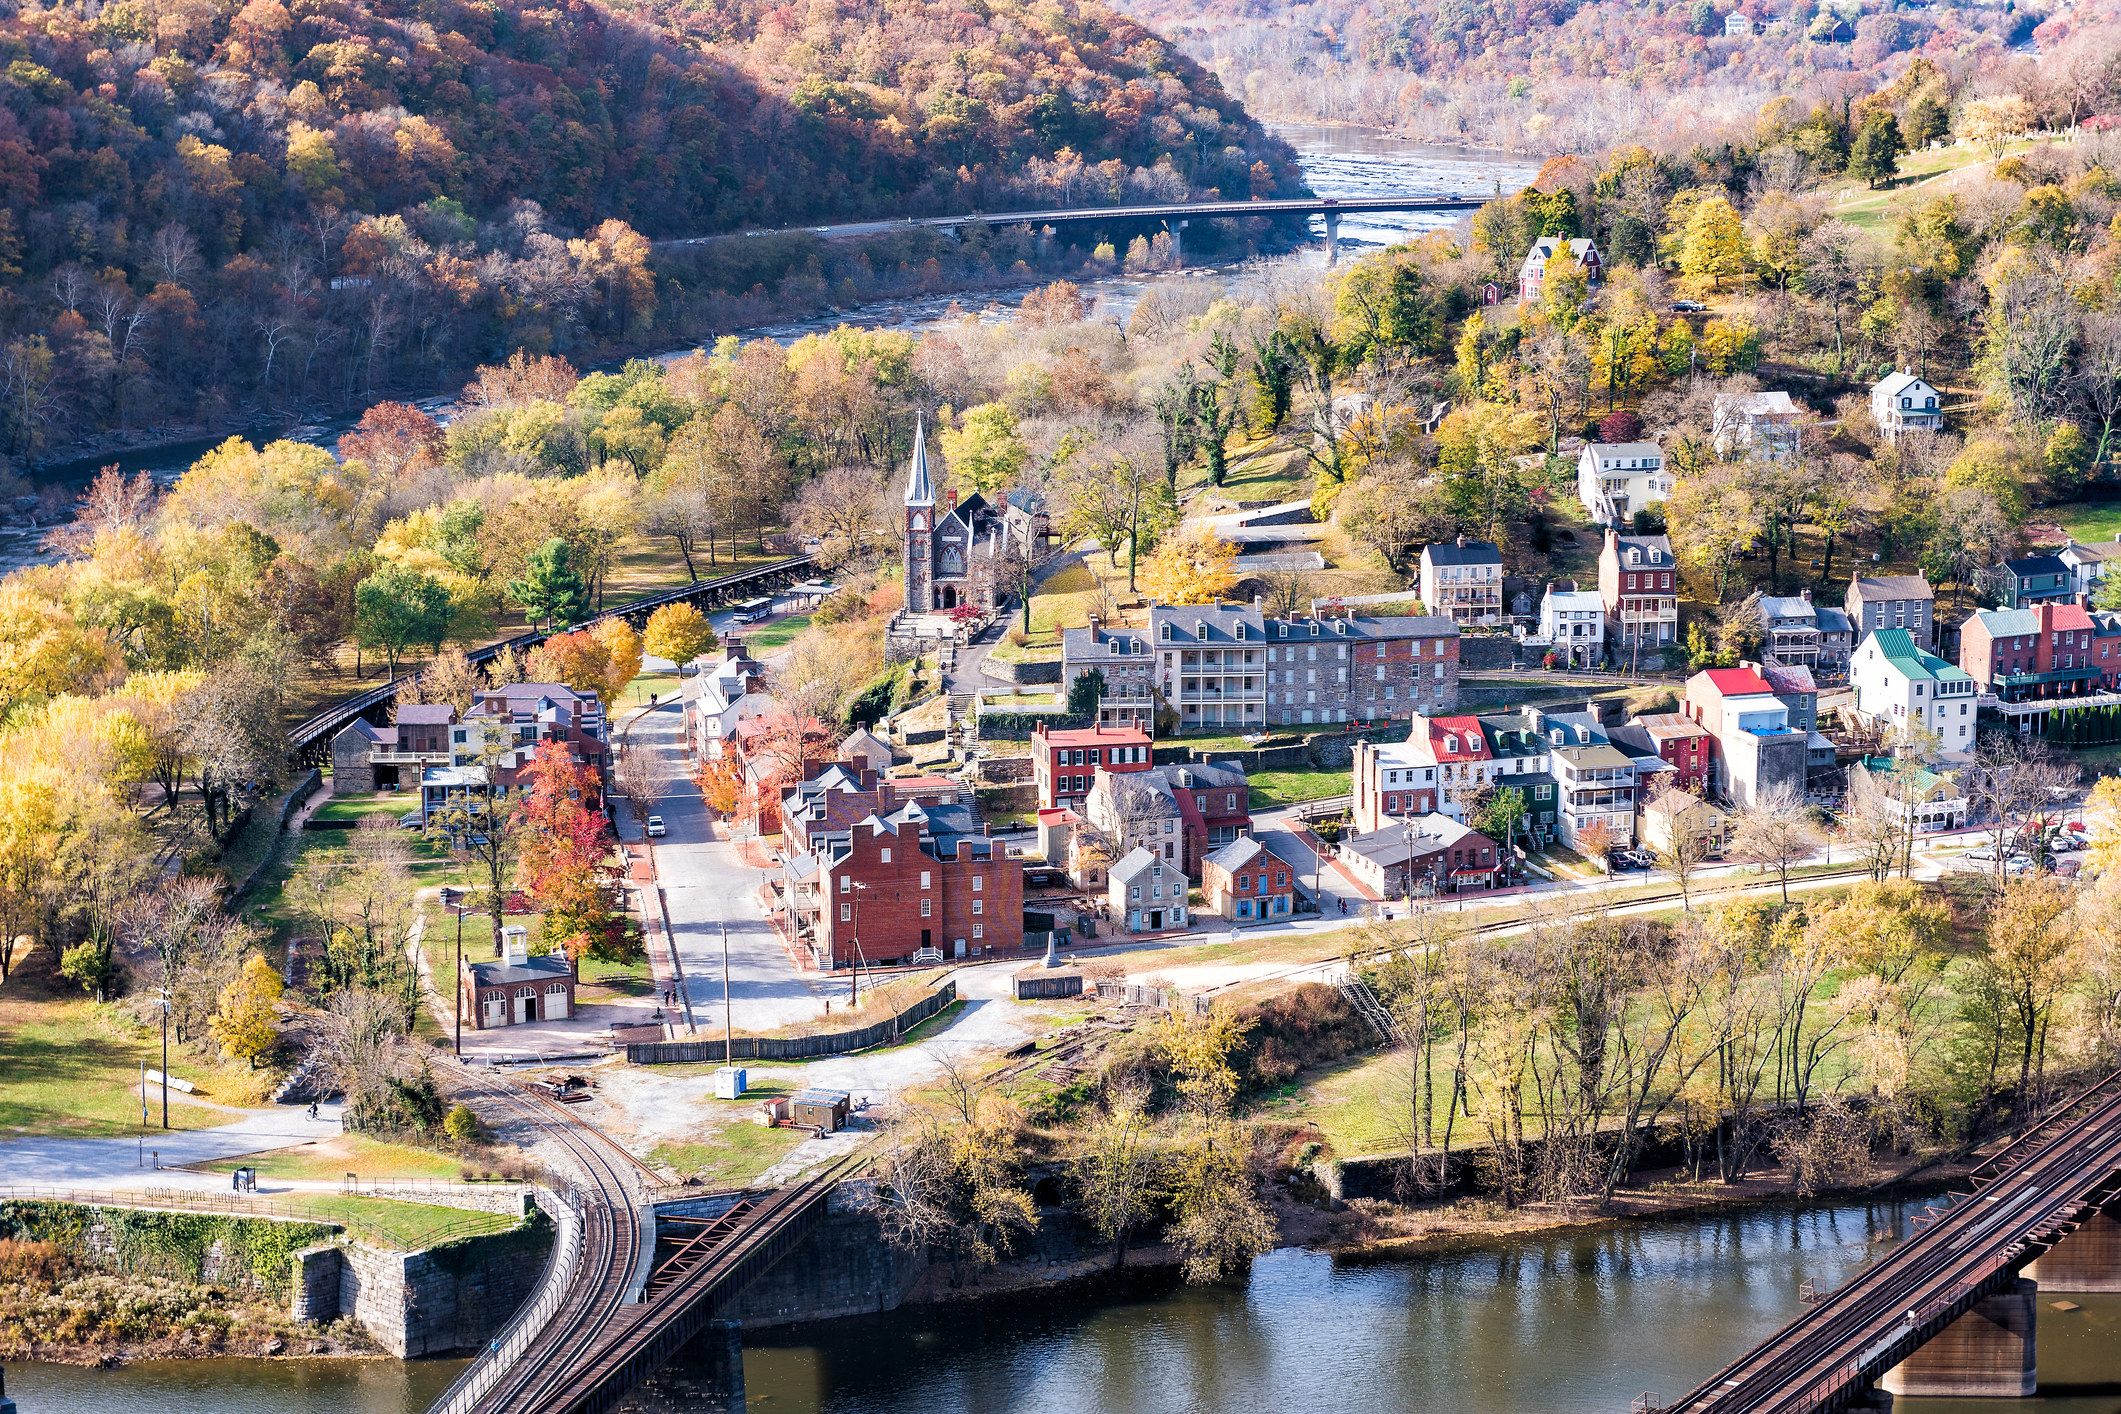 A forest filled with colorful, fall foliage surrounds a small village town by a river